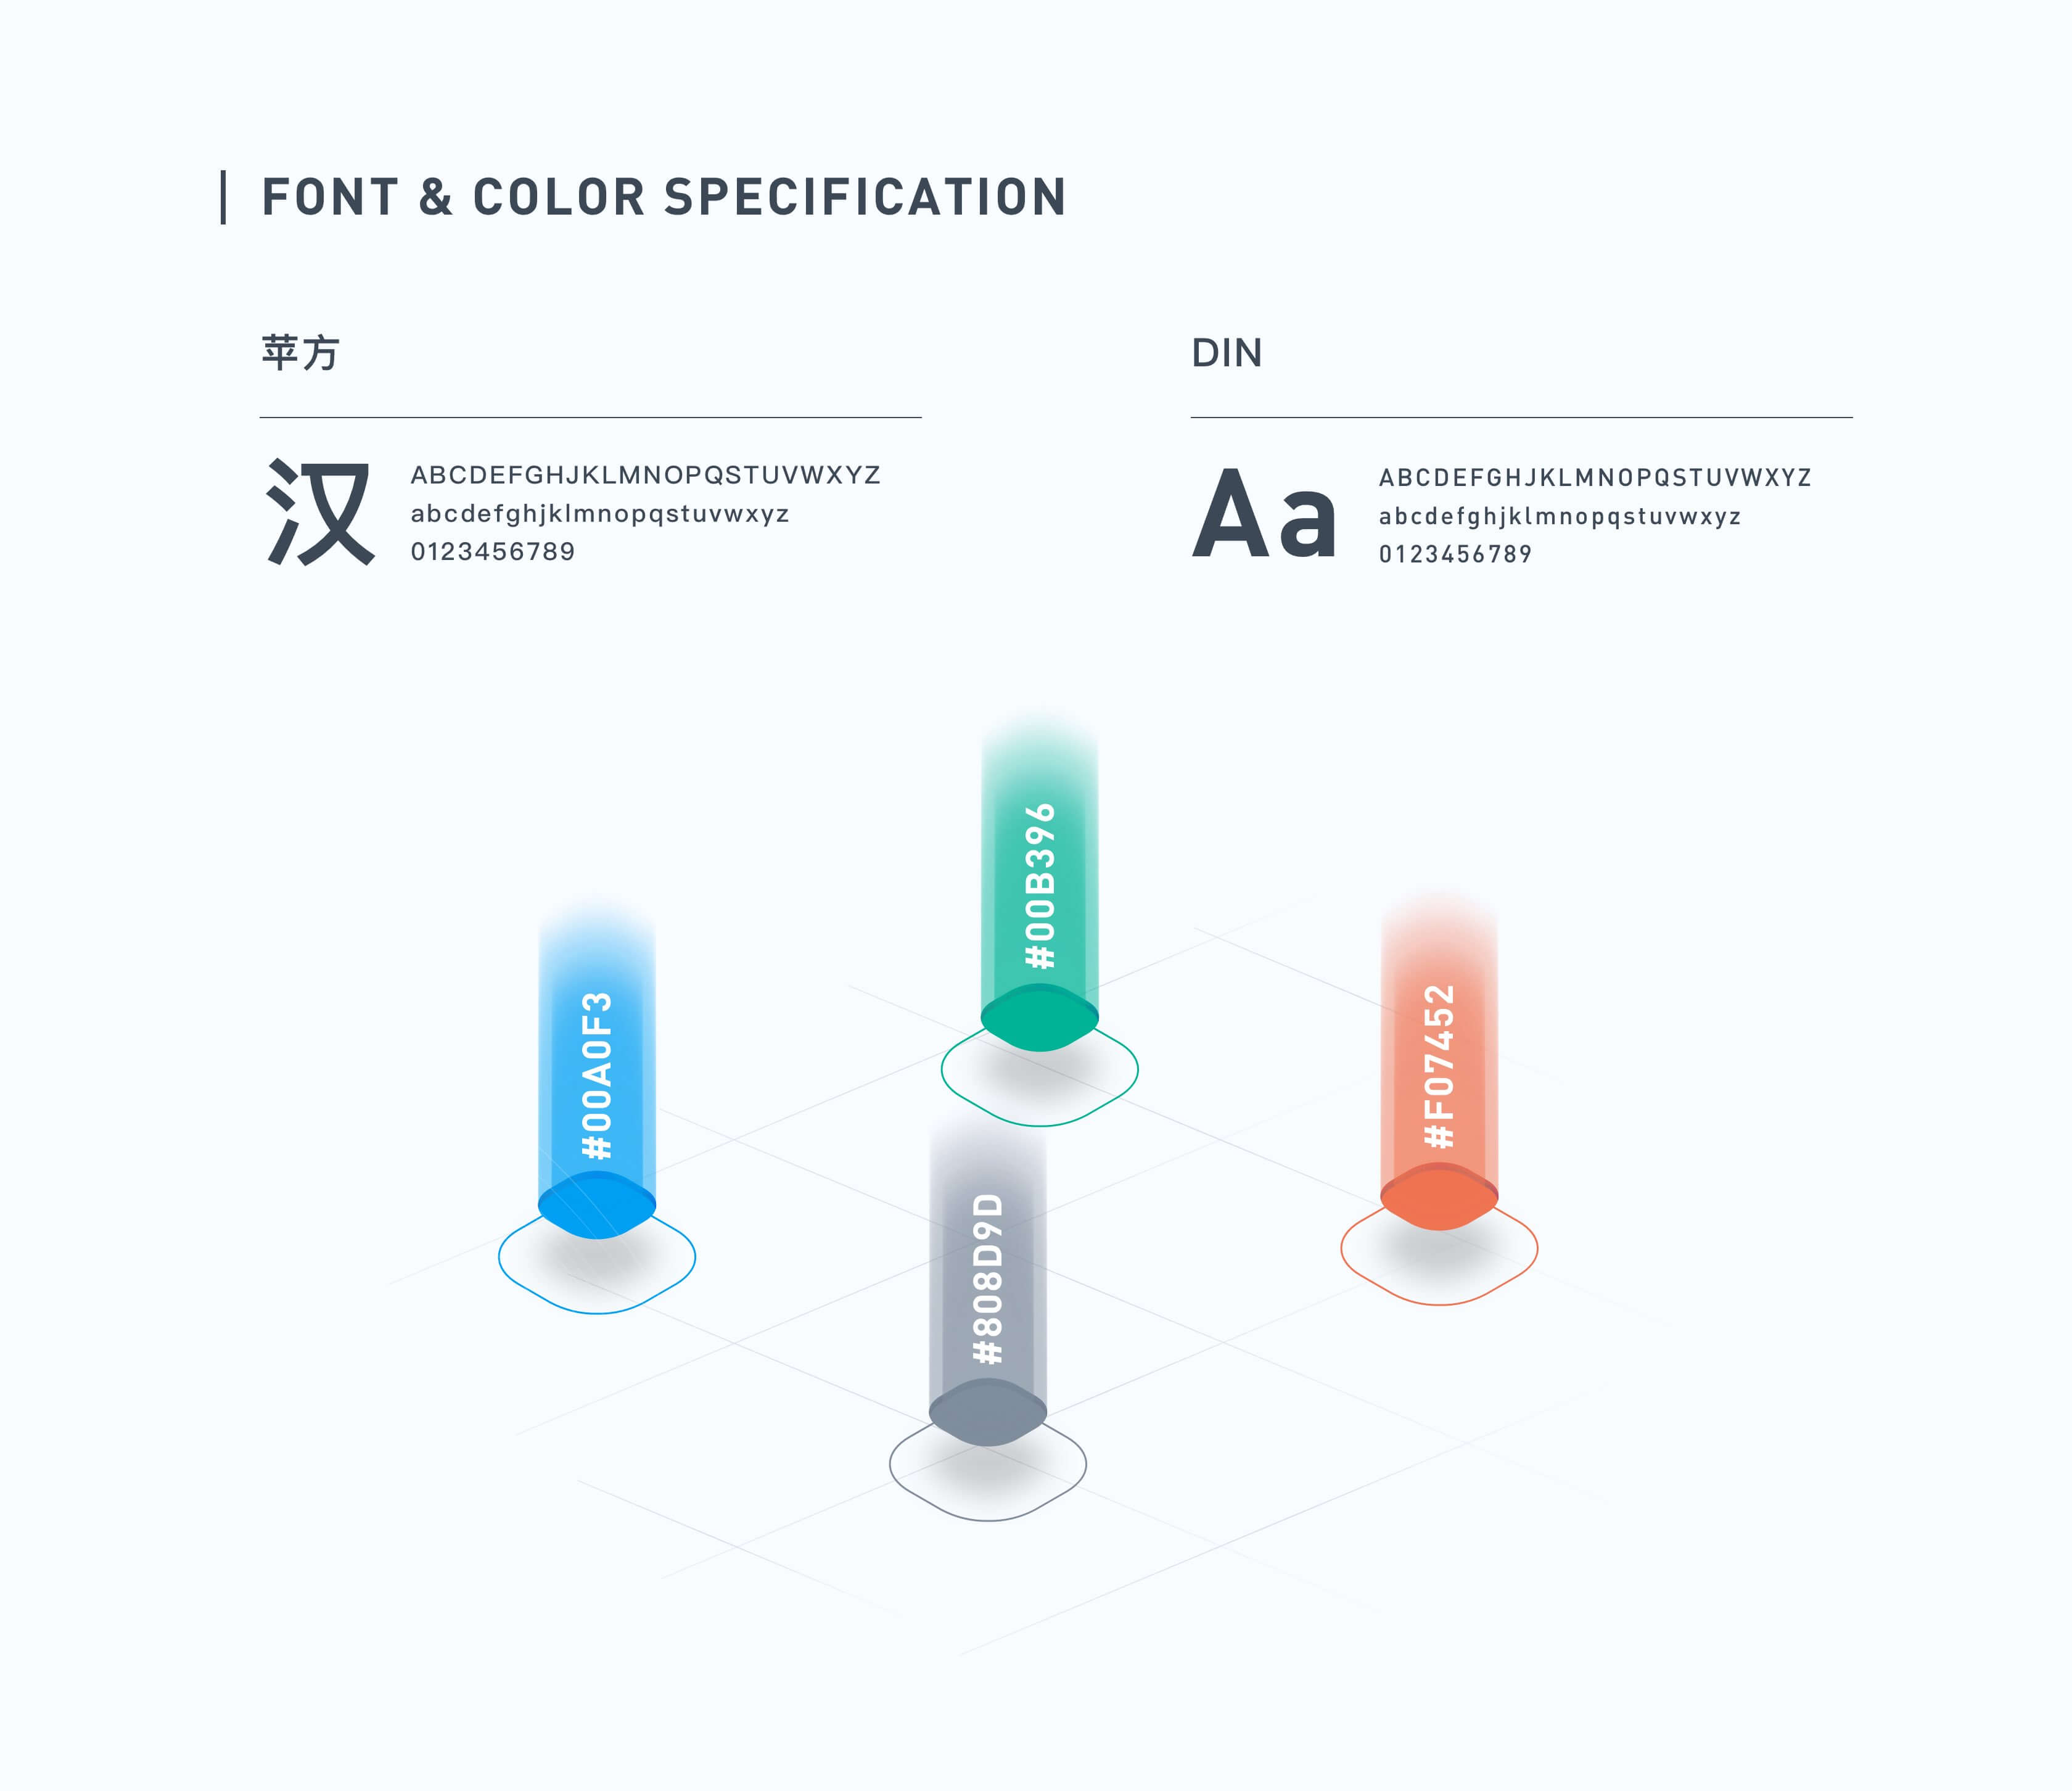 FONT & COLOR SPECIFICATION